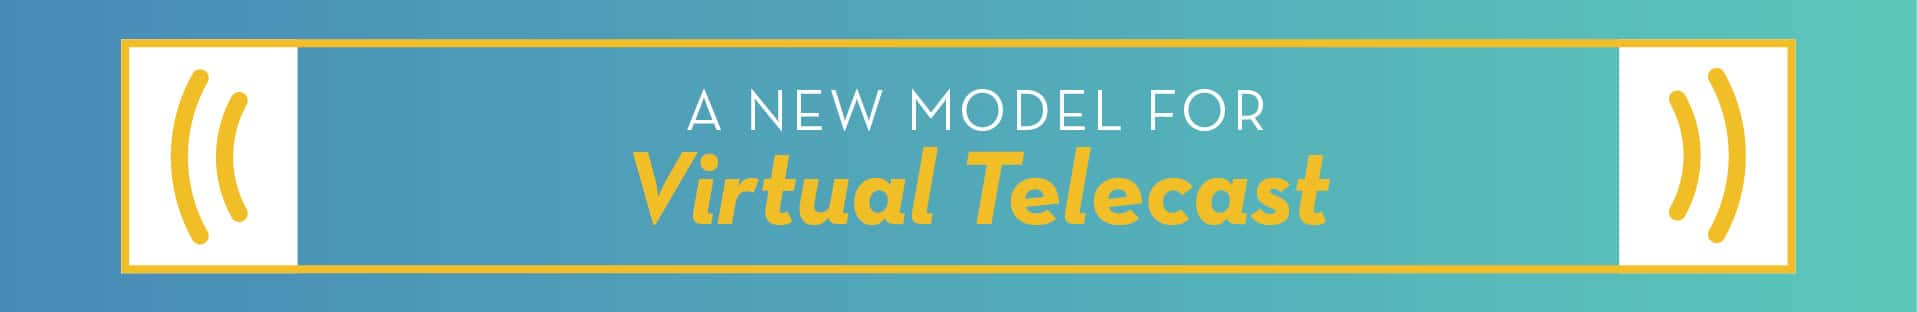 A new model for Virtual Telecast